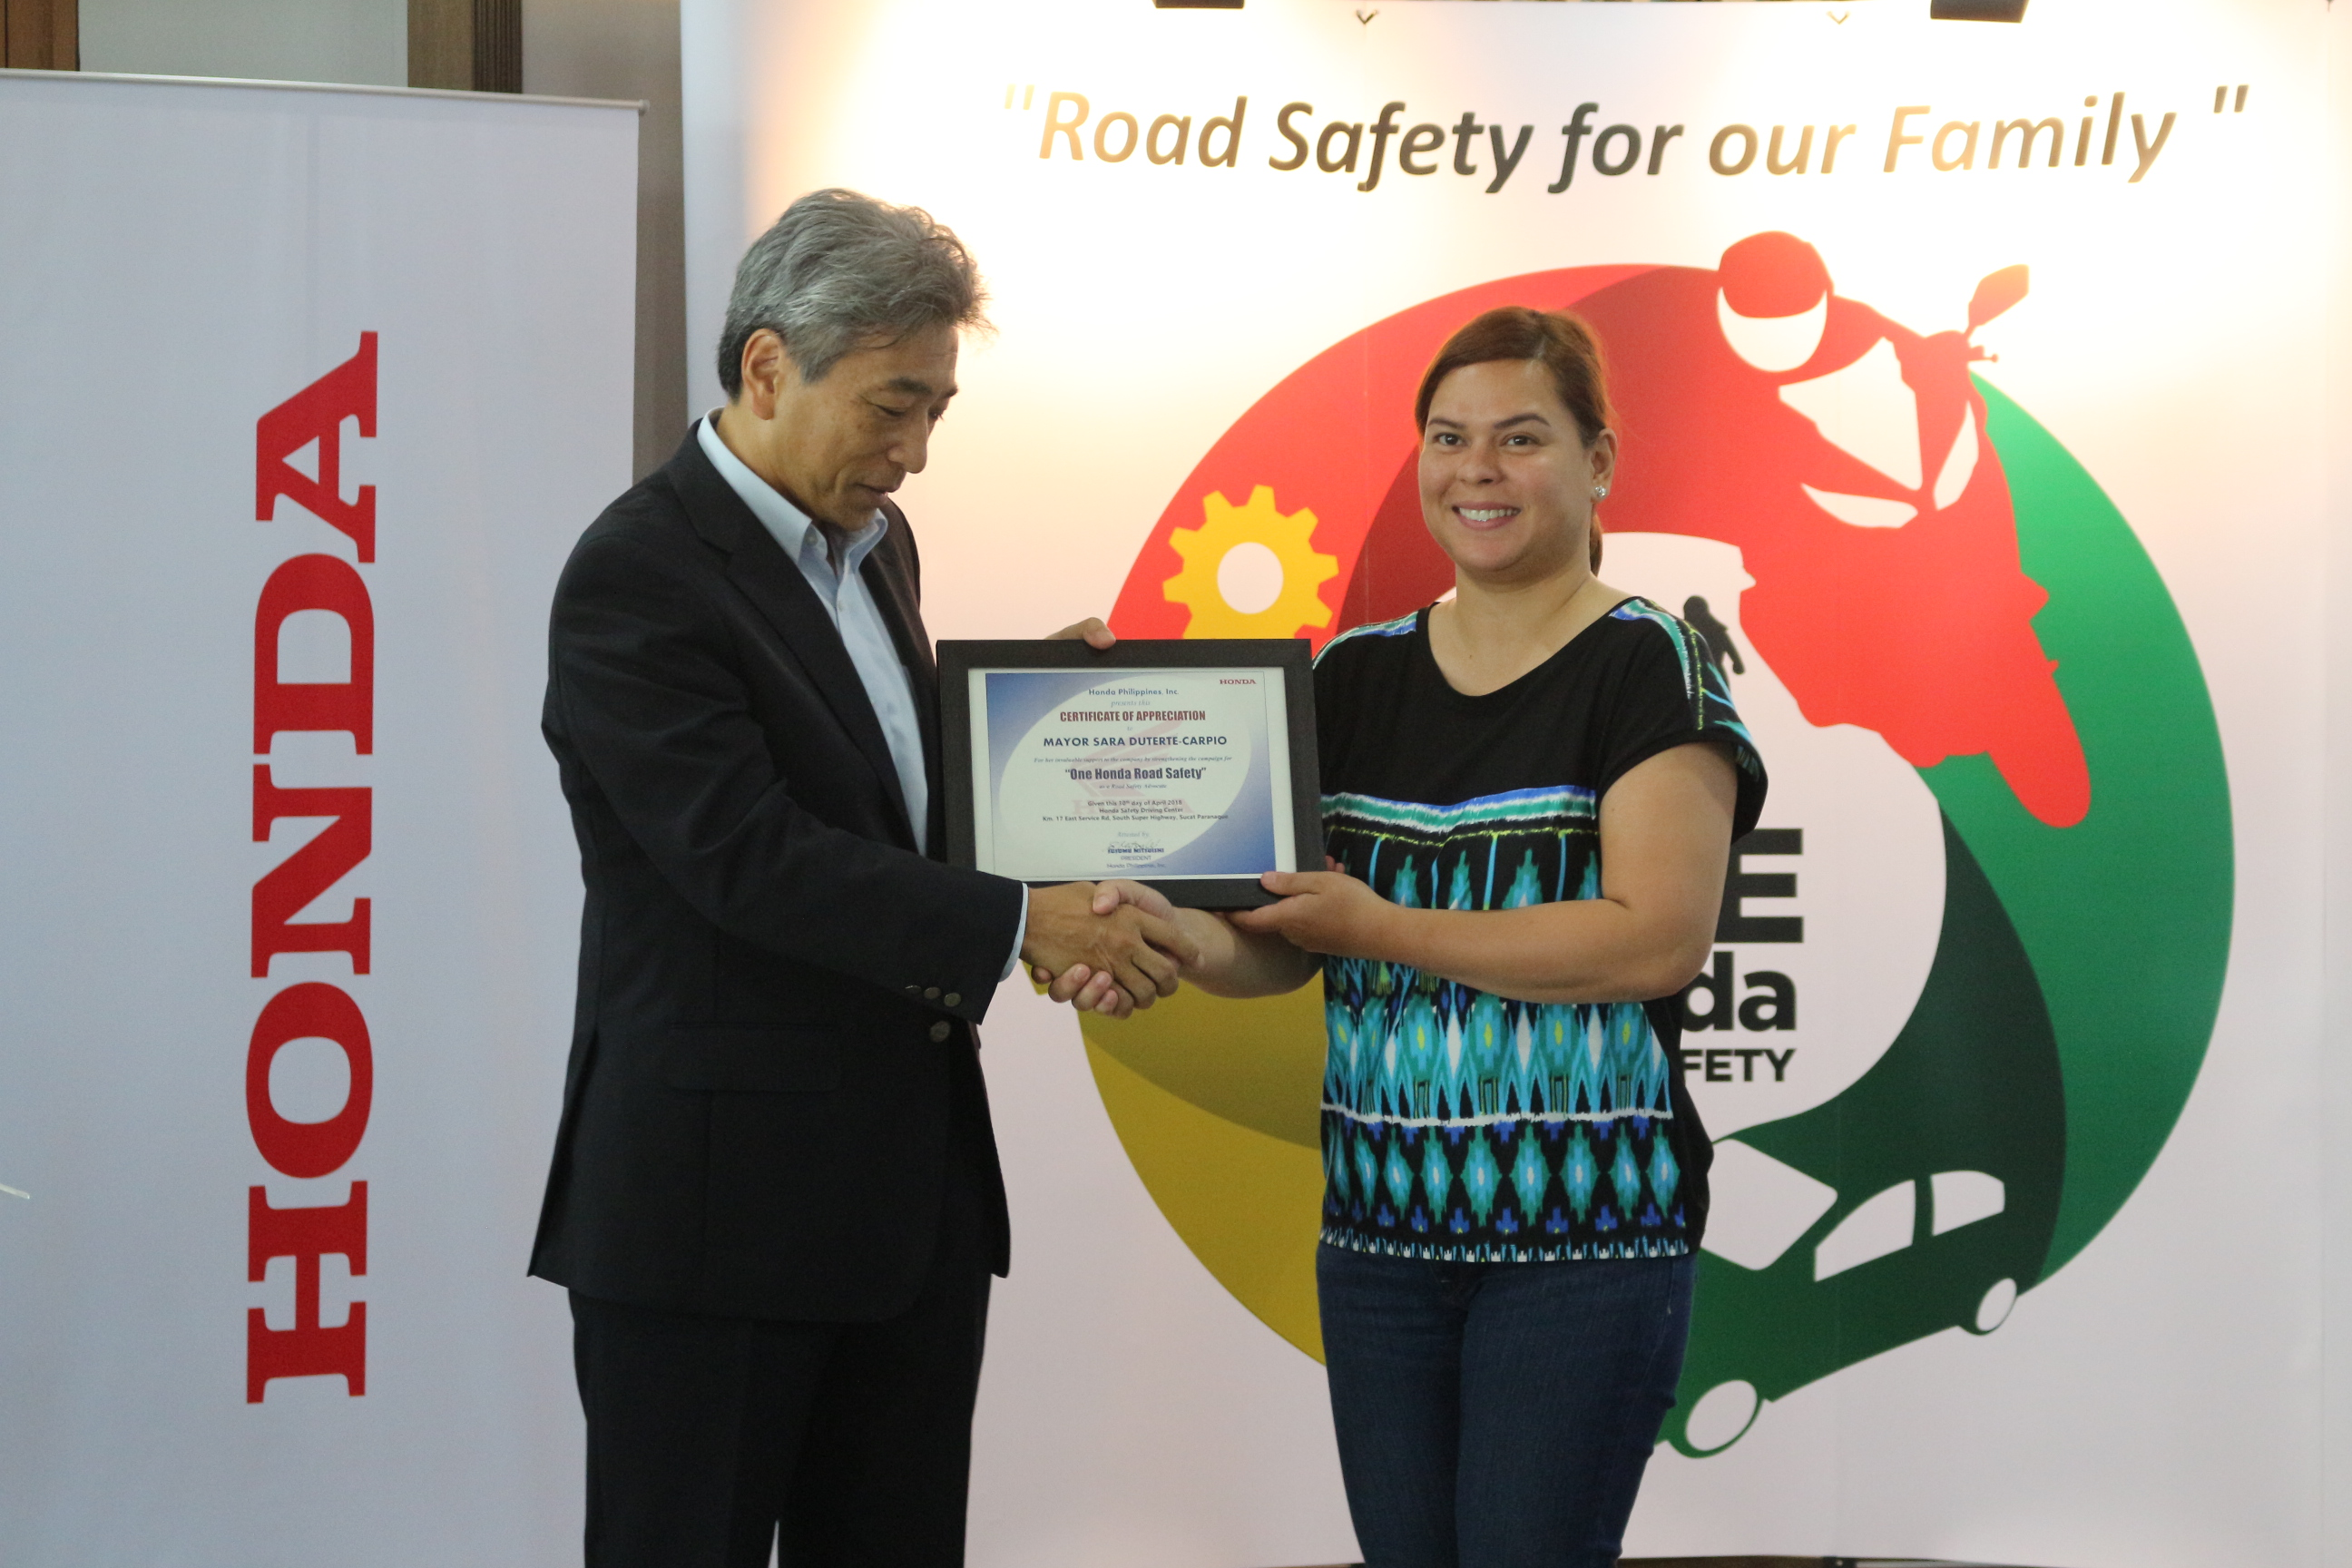 Sarah Duterte supports Honda's Road Safety Advocacy